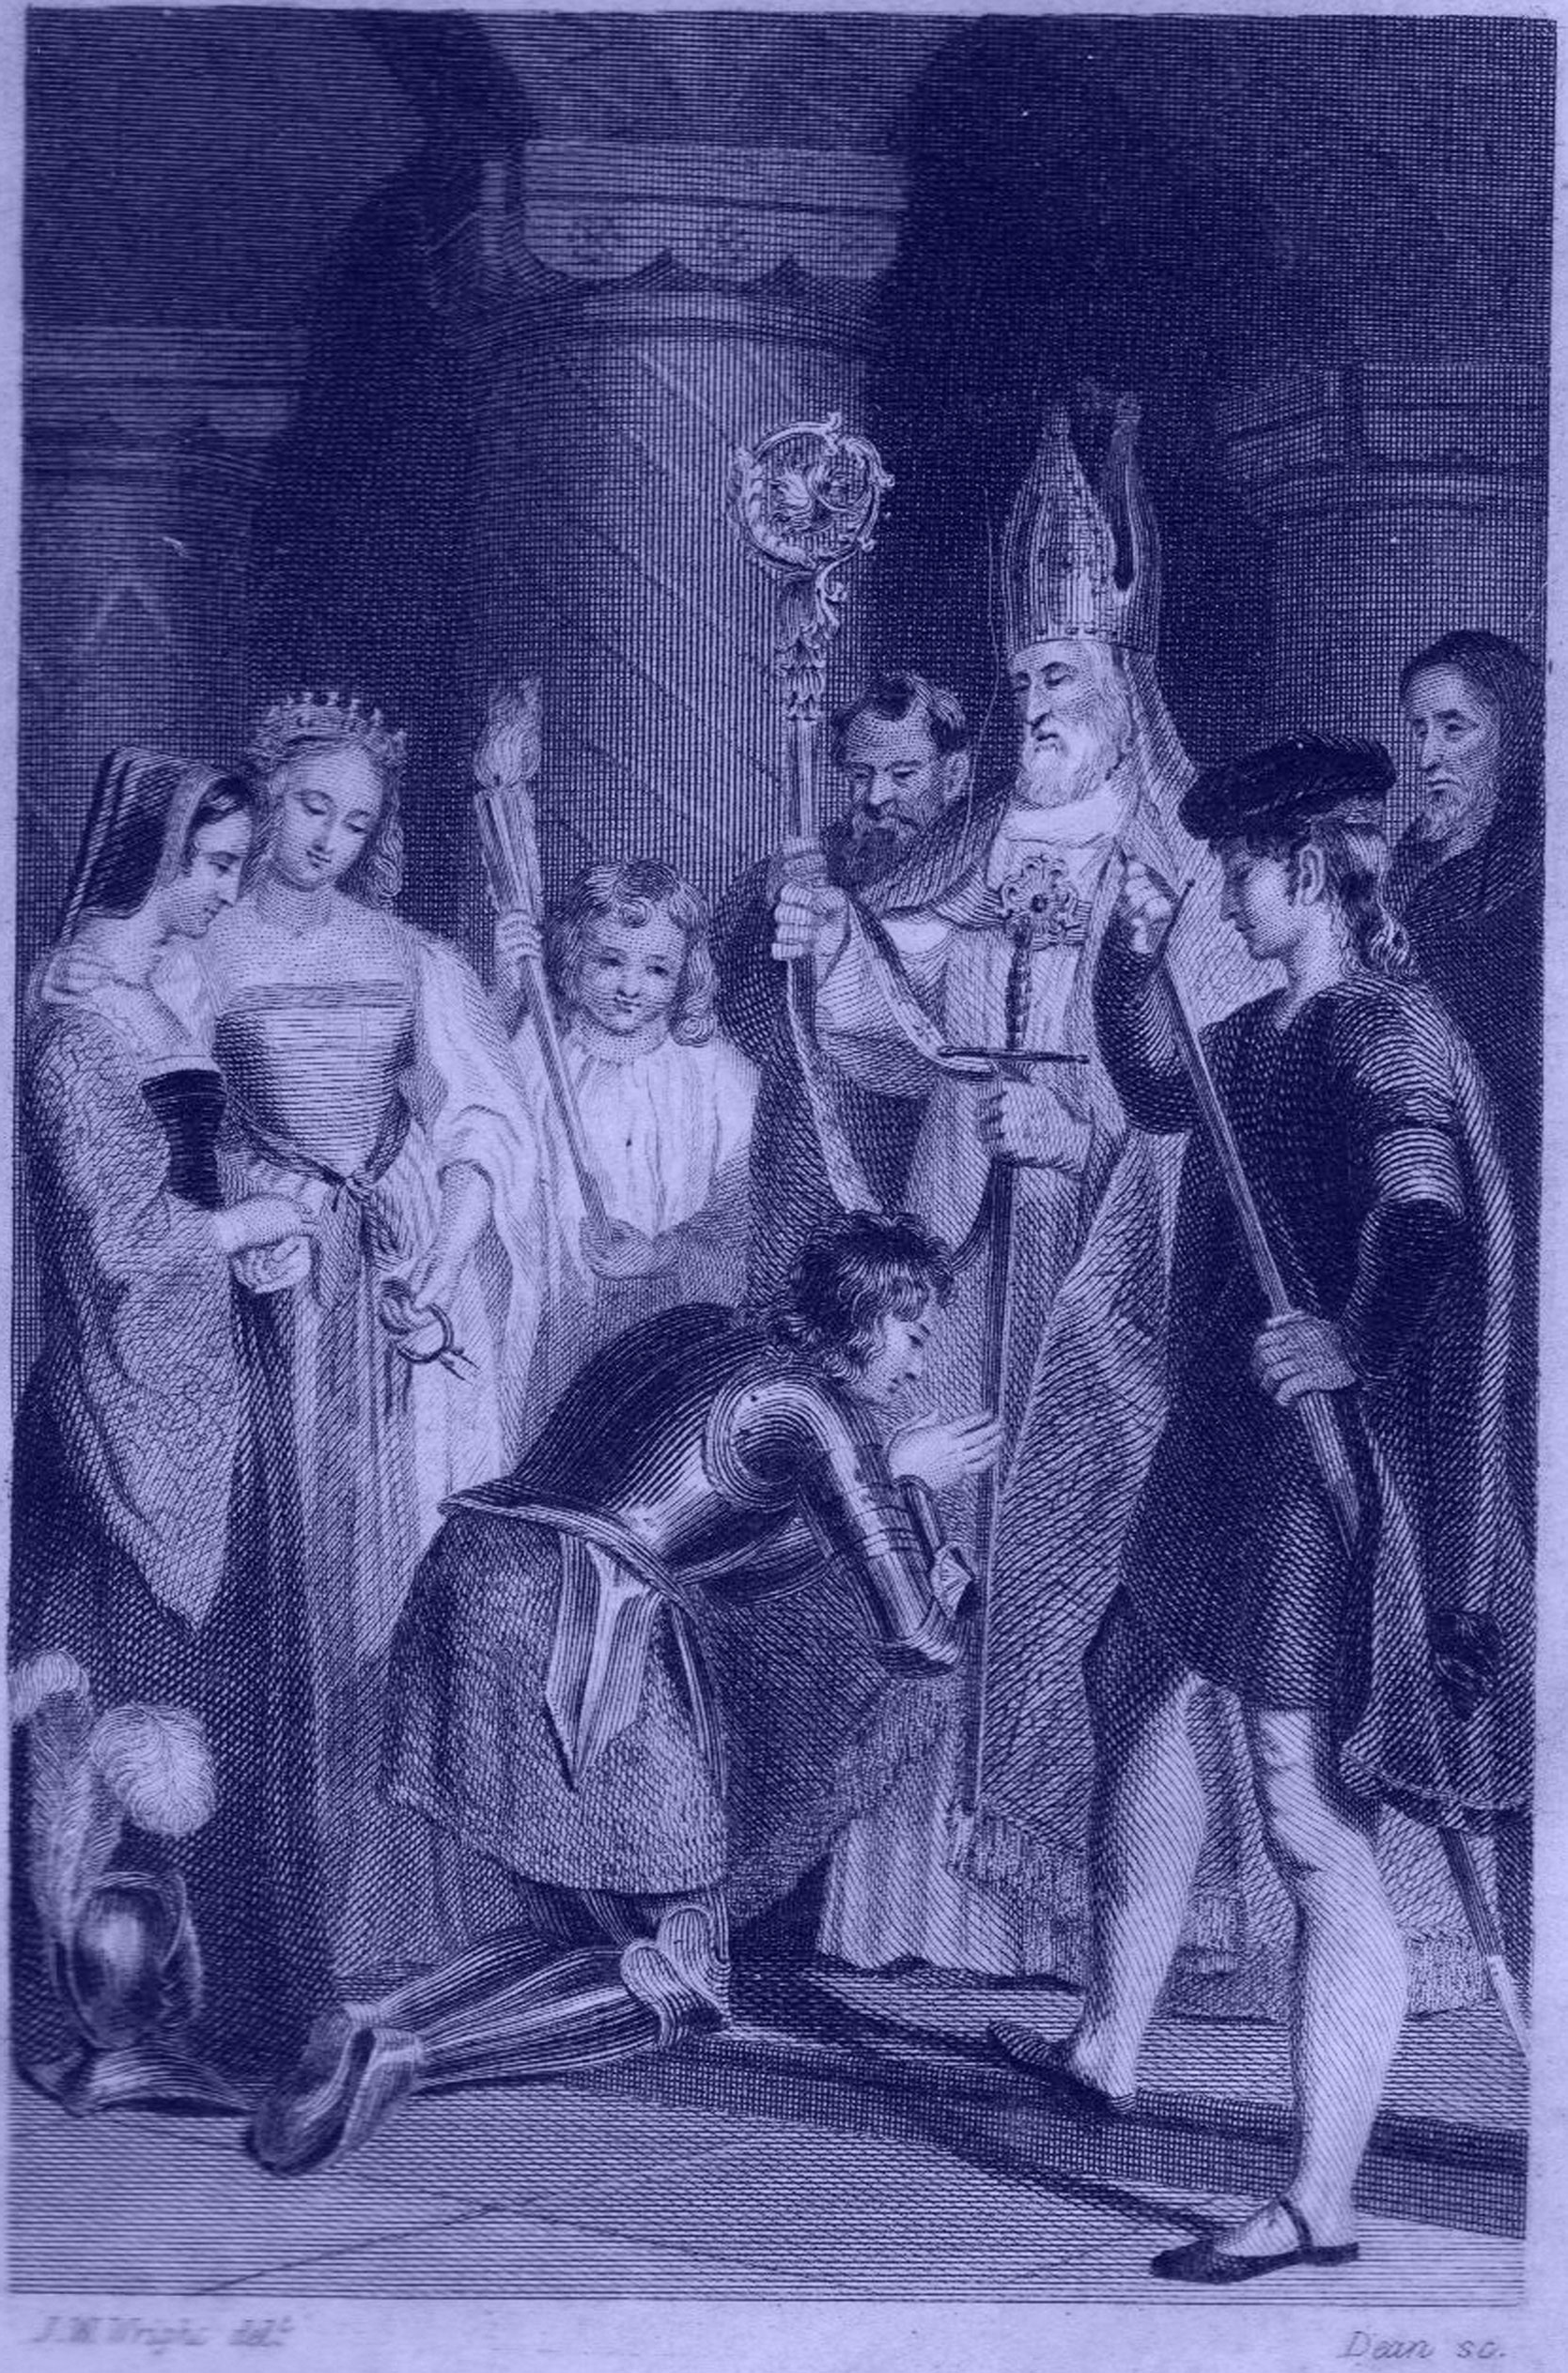 Engraving by J. W. Wright of a knight knealing beofre a mitred bishop, with women and children around him.